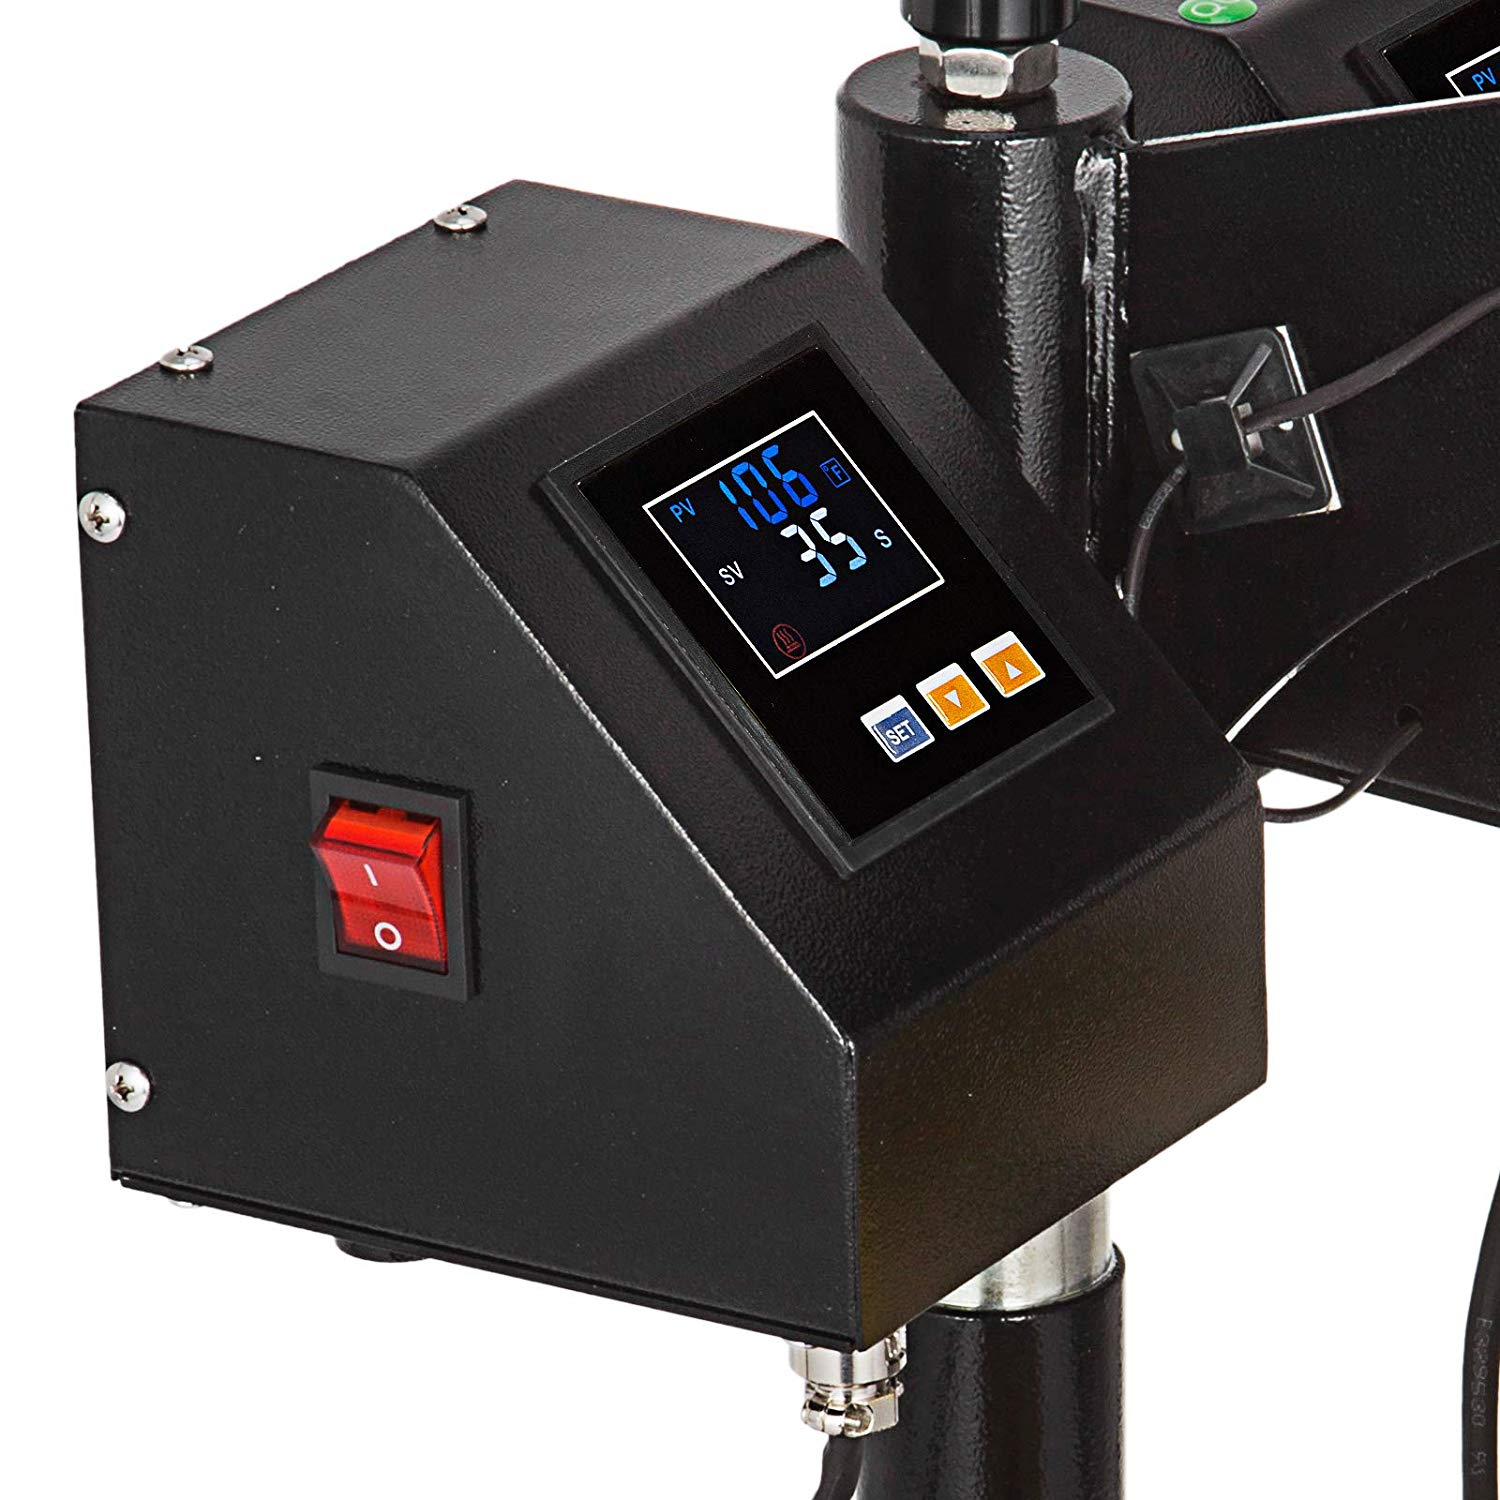 clampshell rosin press pid controller touch LCD display